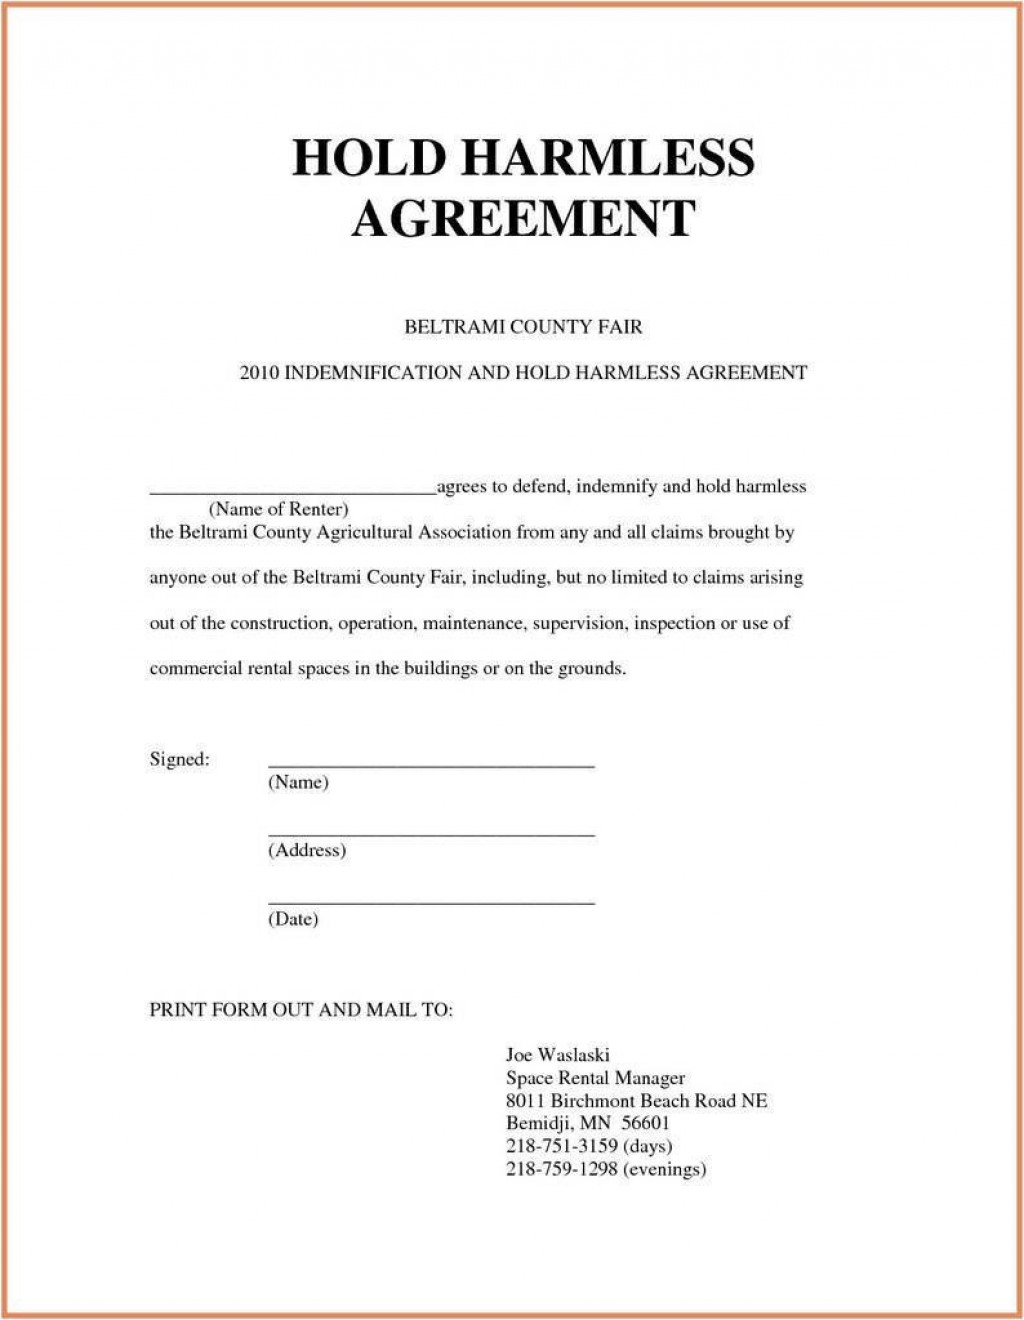 007 Dreaded Hold Harmles Agreement Template Design  Canada Word Free DownloadLarge